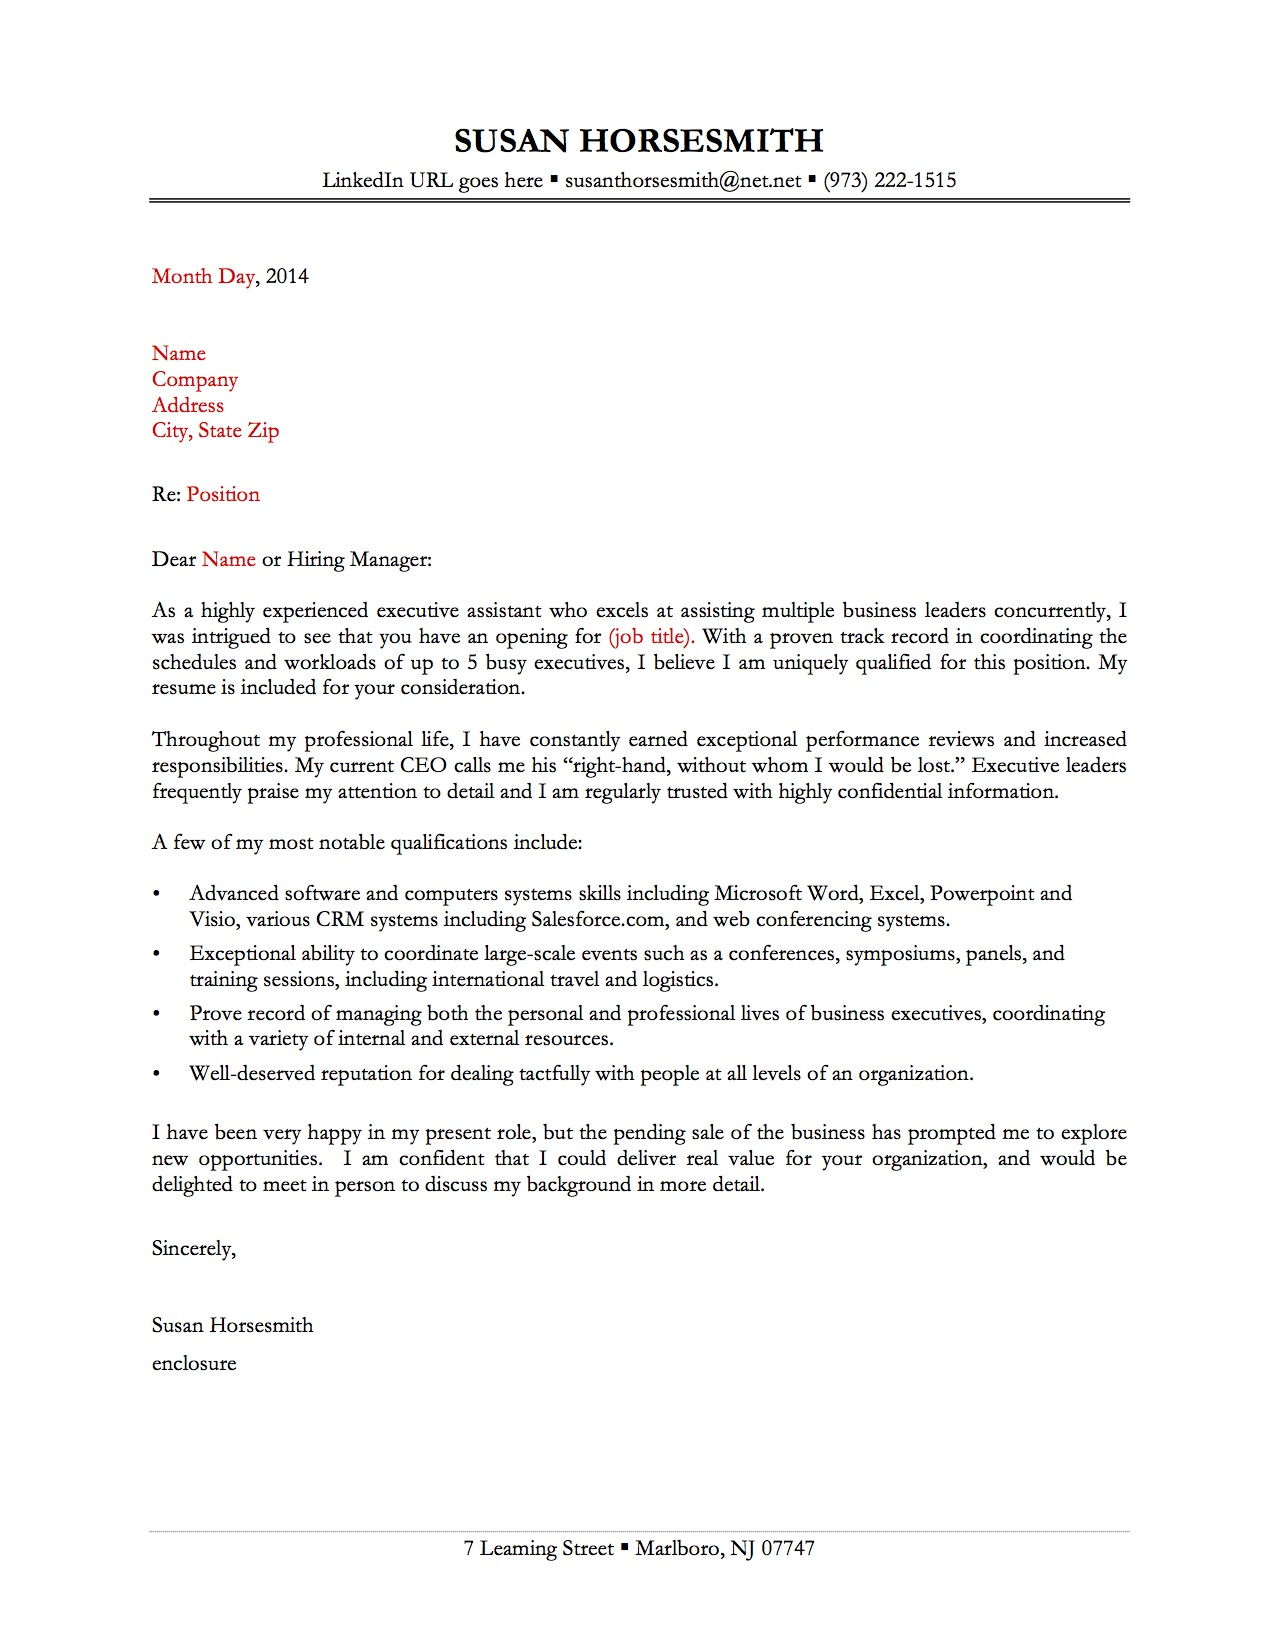 Two great cover letter examples blue sky resumes blog for What to include in a cover letter uk